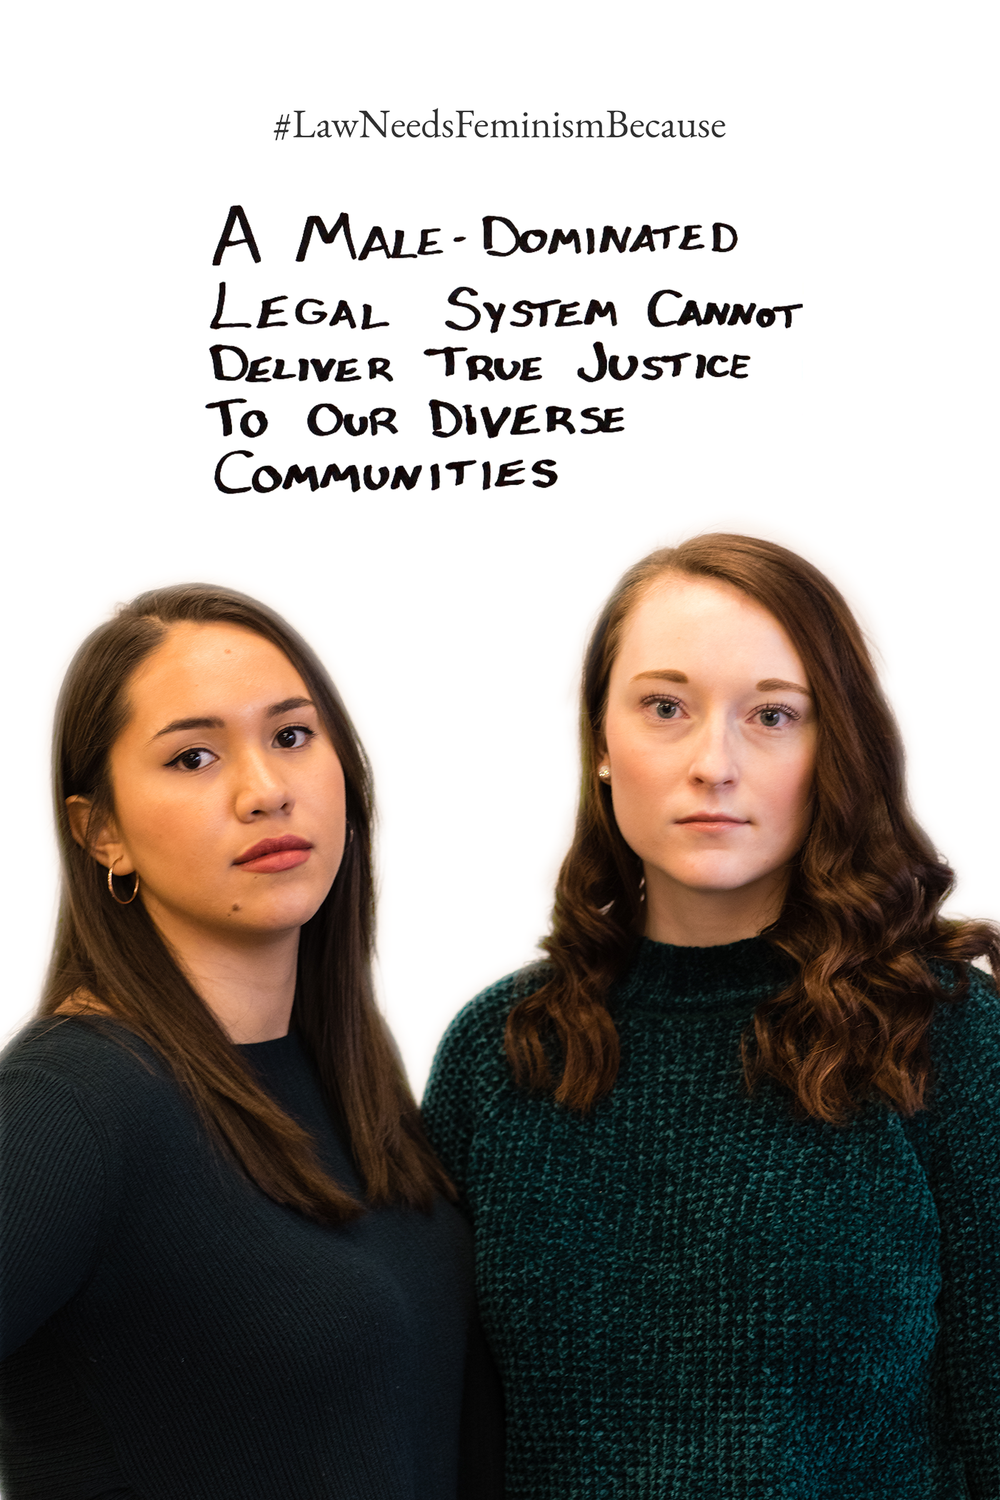 Law Needs Feminism Because  a male-dominated legal system cannot deliver true justice to our diverse communities